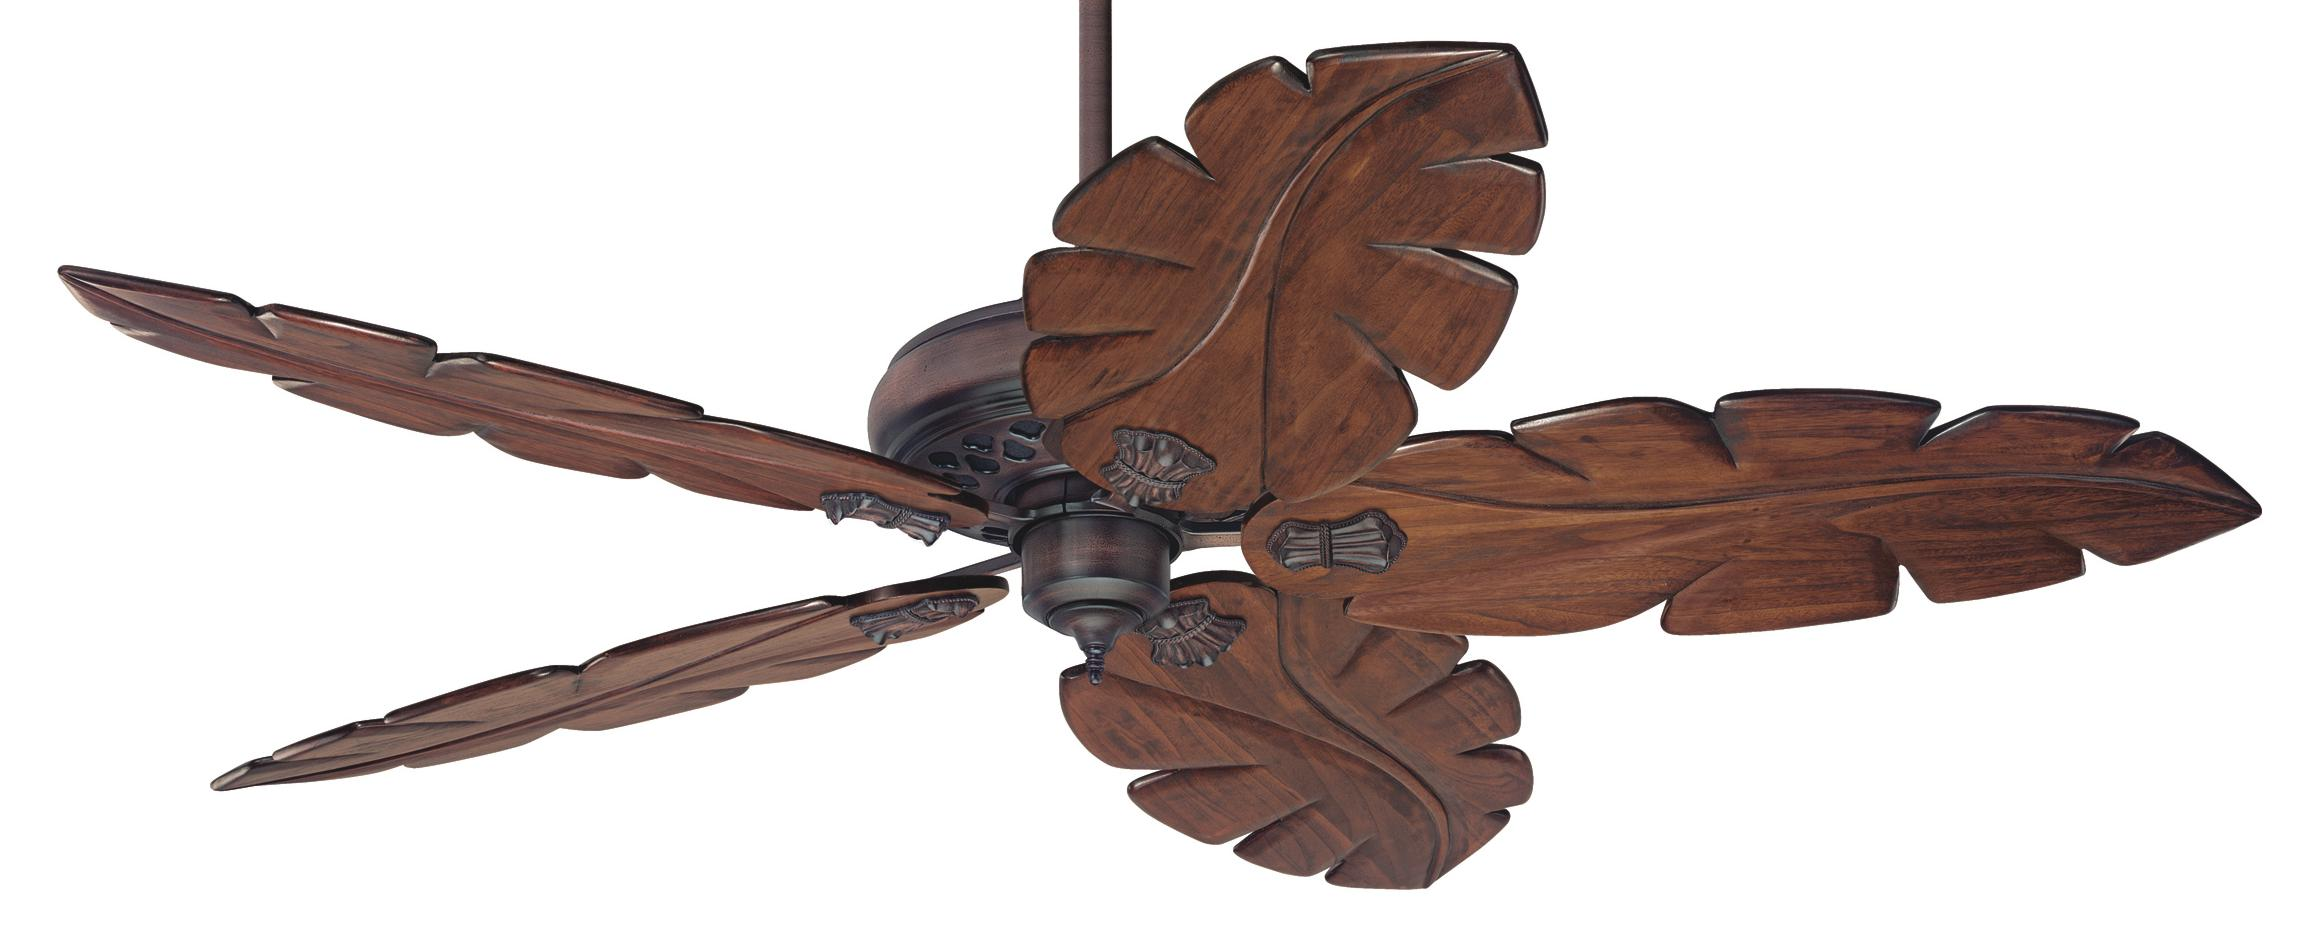 wonderful Casablanca Ceiling Fans in five leave design blade slinger for ceiling decor ideas